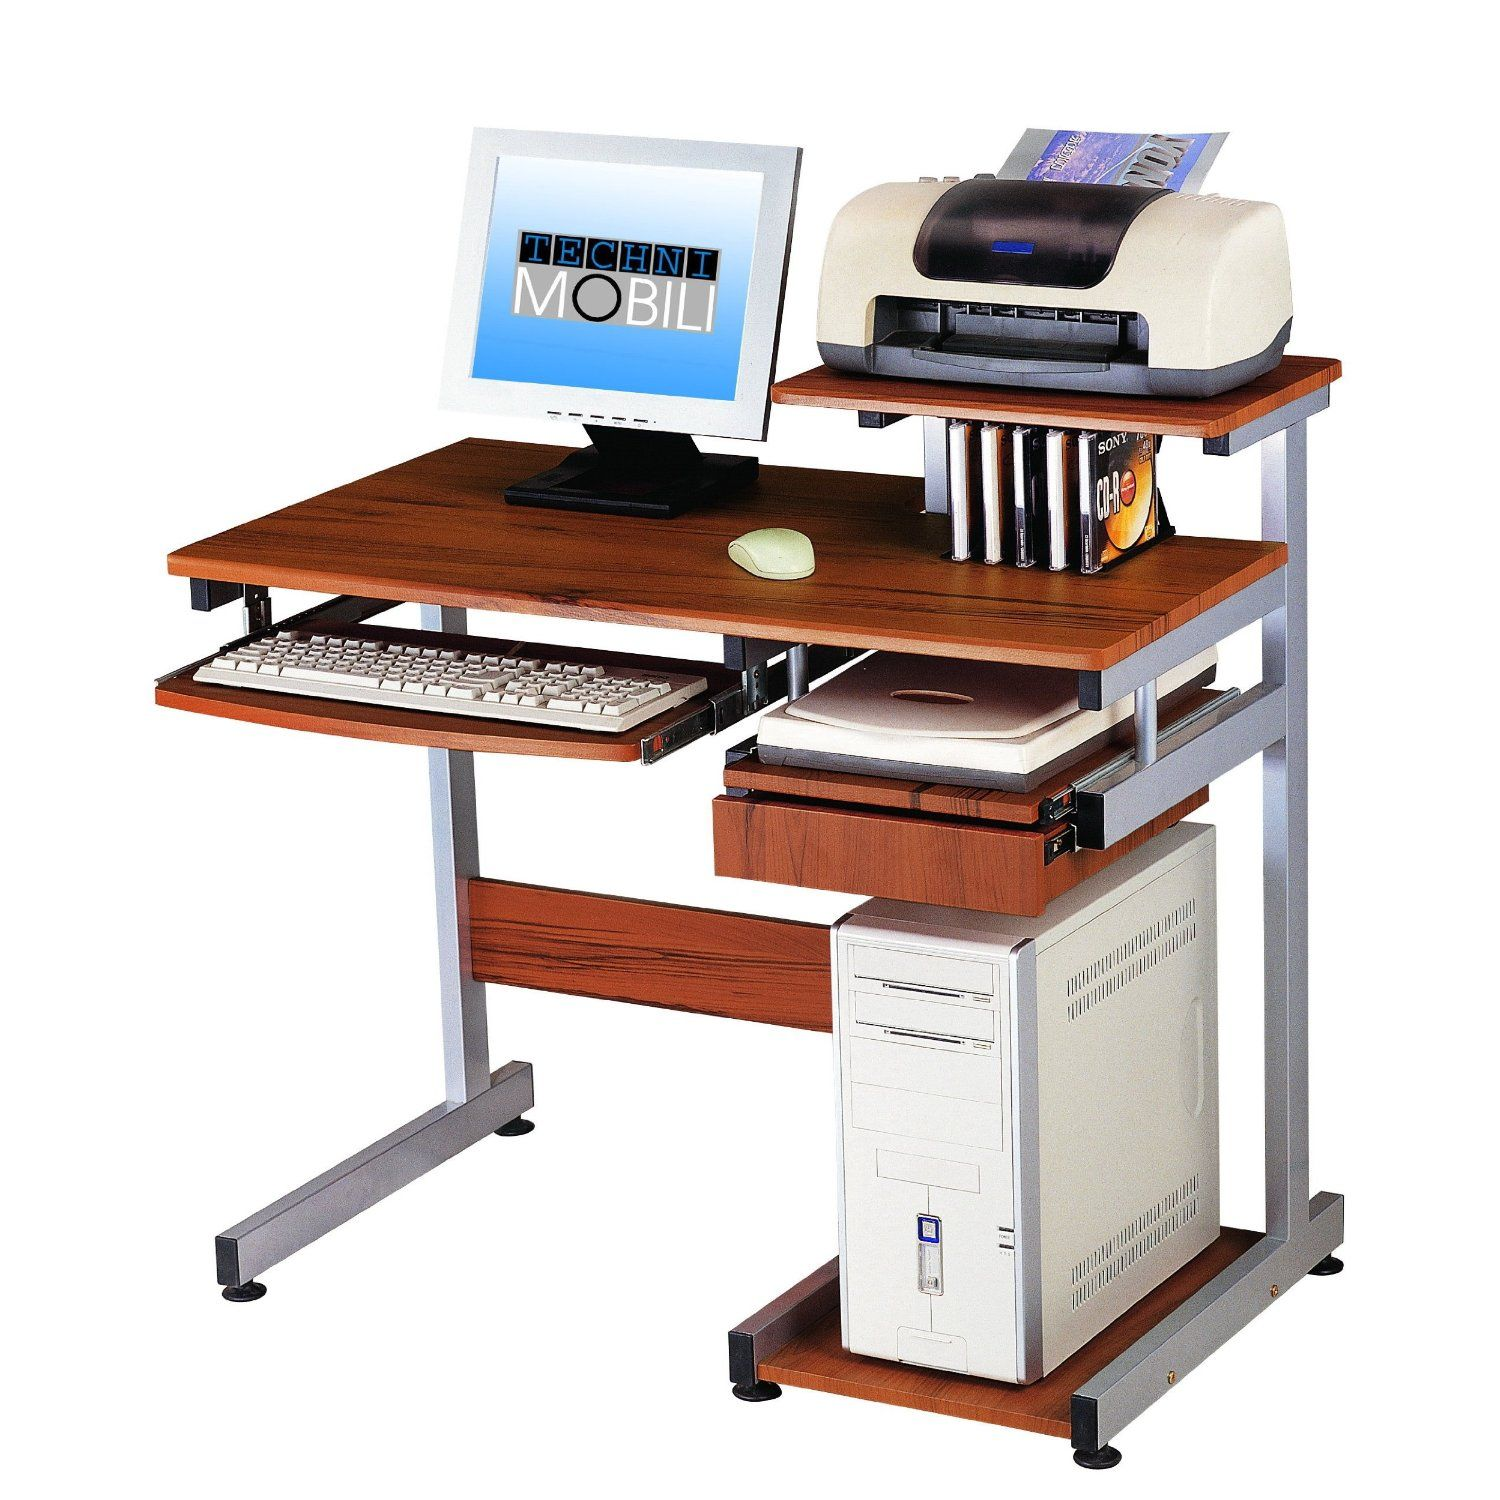 wooden puter desk plete with drawer for keyboard and scanner CPU and tiny table to put